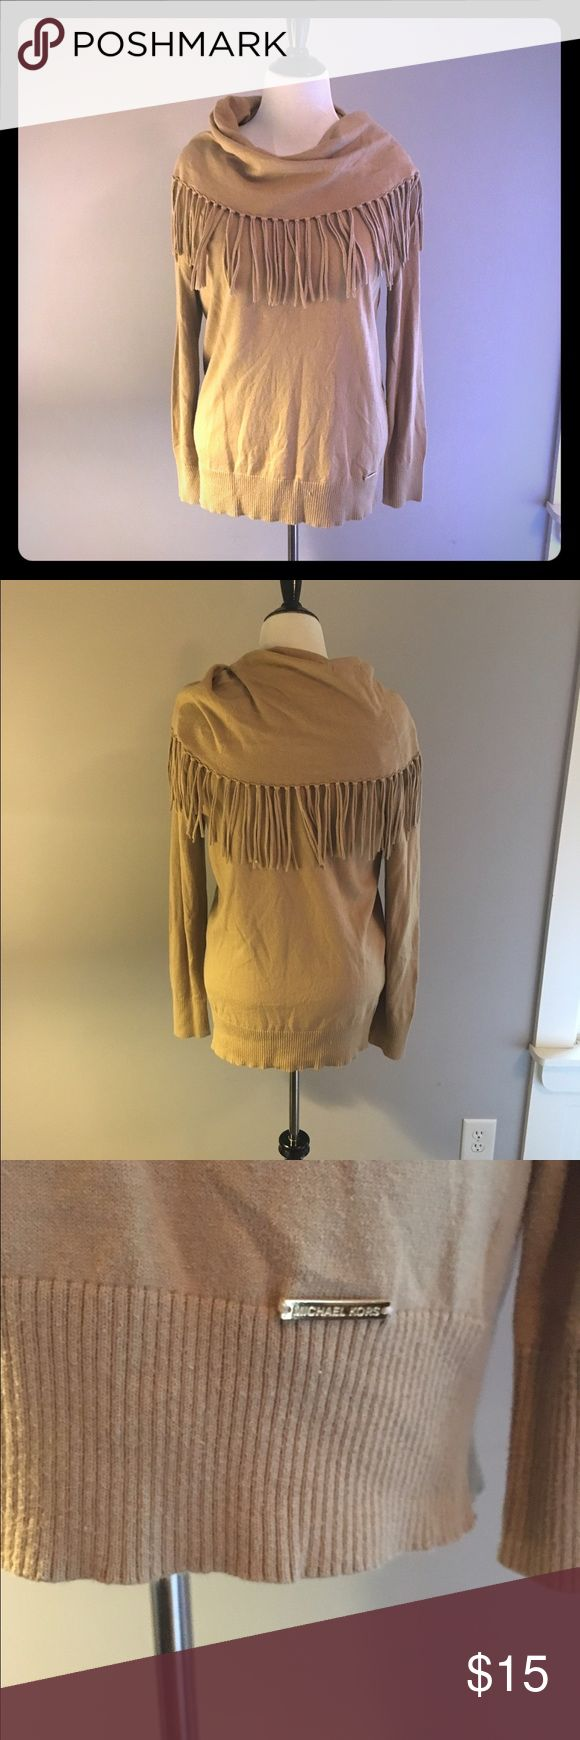 Michael Kors Fringe Sweater Michael Kors Fringe Sweater in XL. Camel color. So cozy. Tunic length so works great with leggings and boots. Gently used with lots of life left. Michael Kors Sweaters